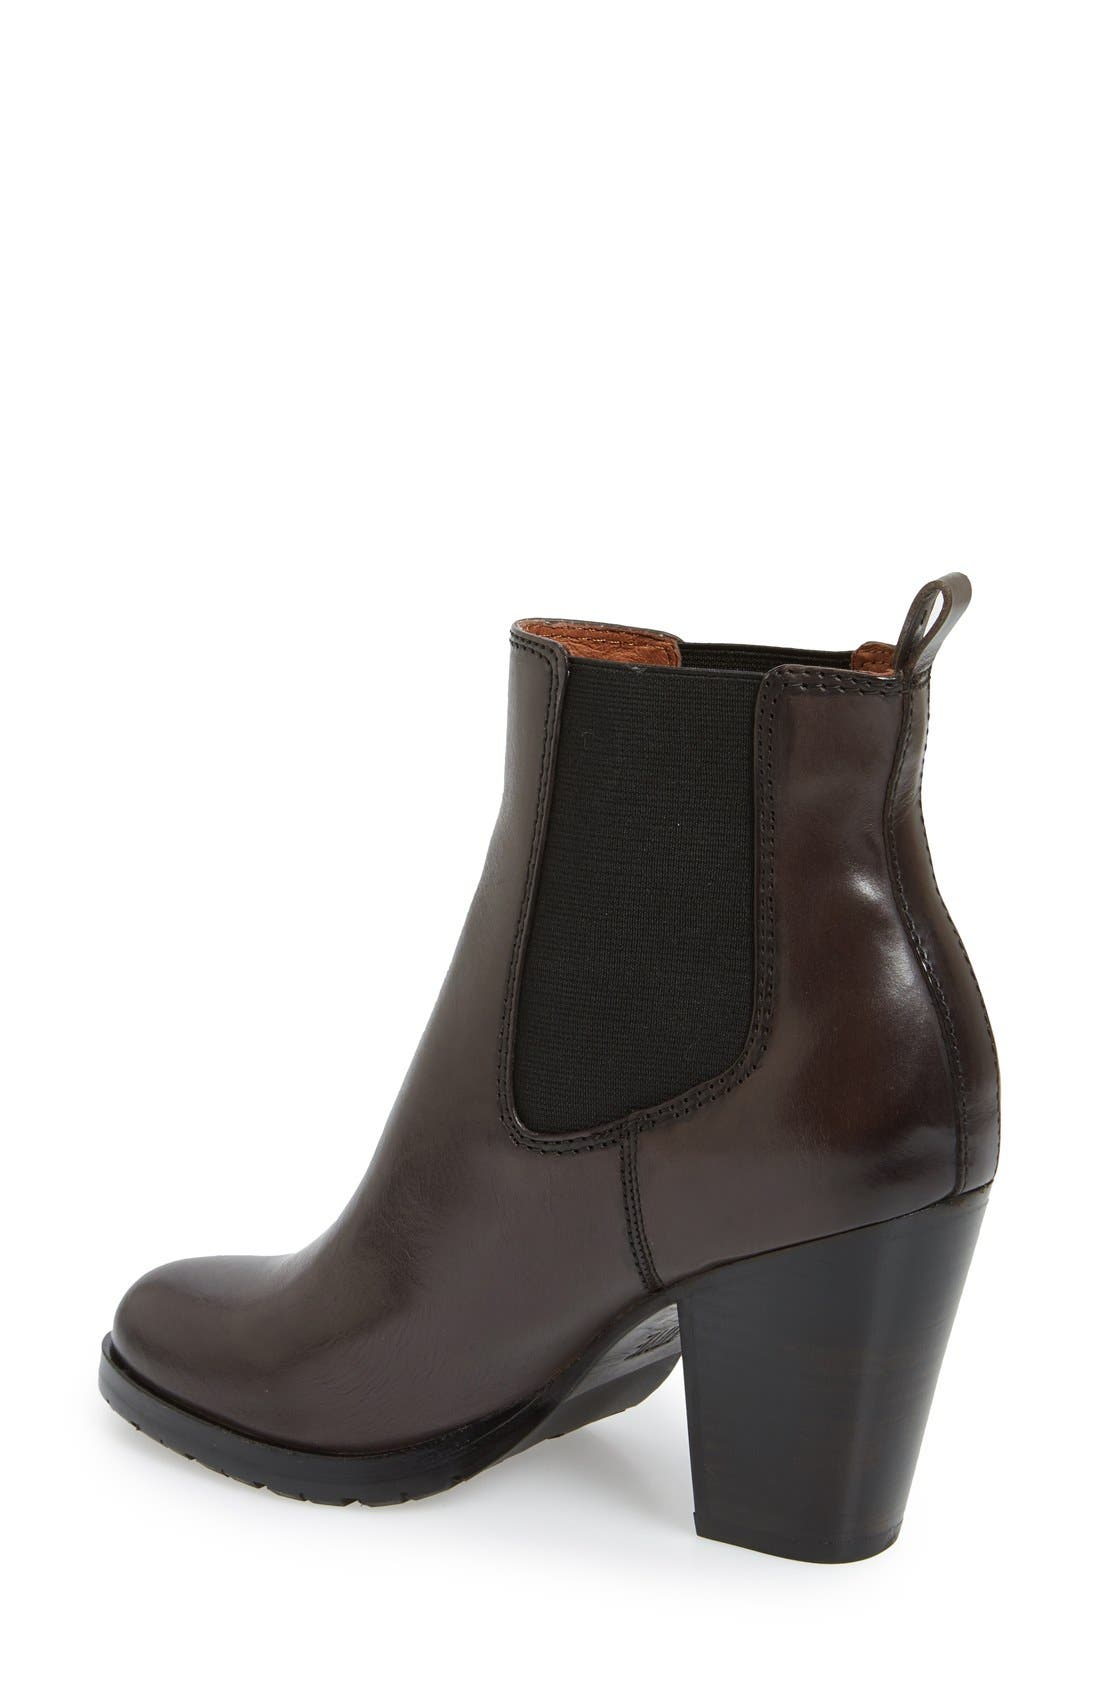 Alternate Image 2  - Frye 'Tate' Chelsea Boot (Women)